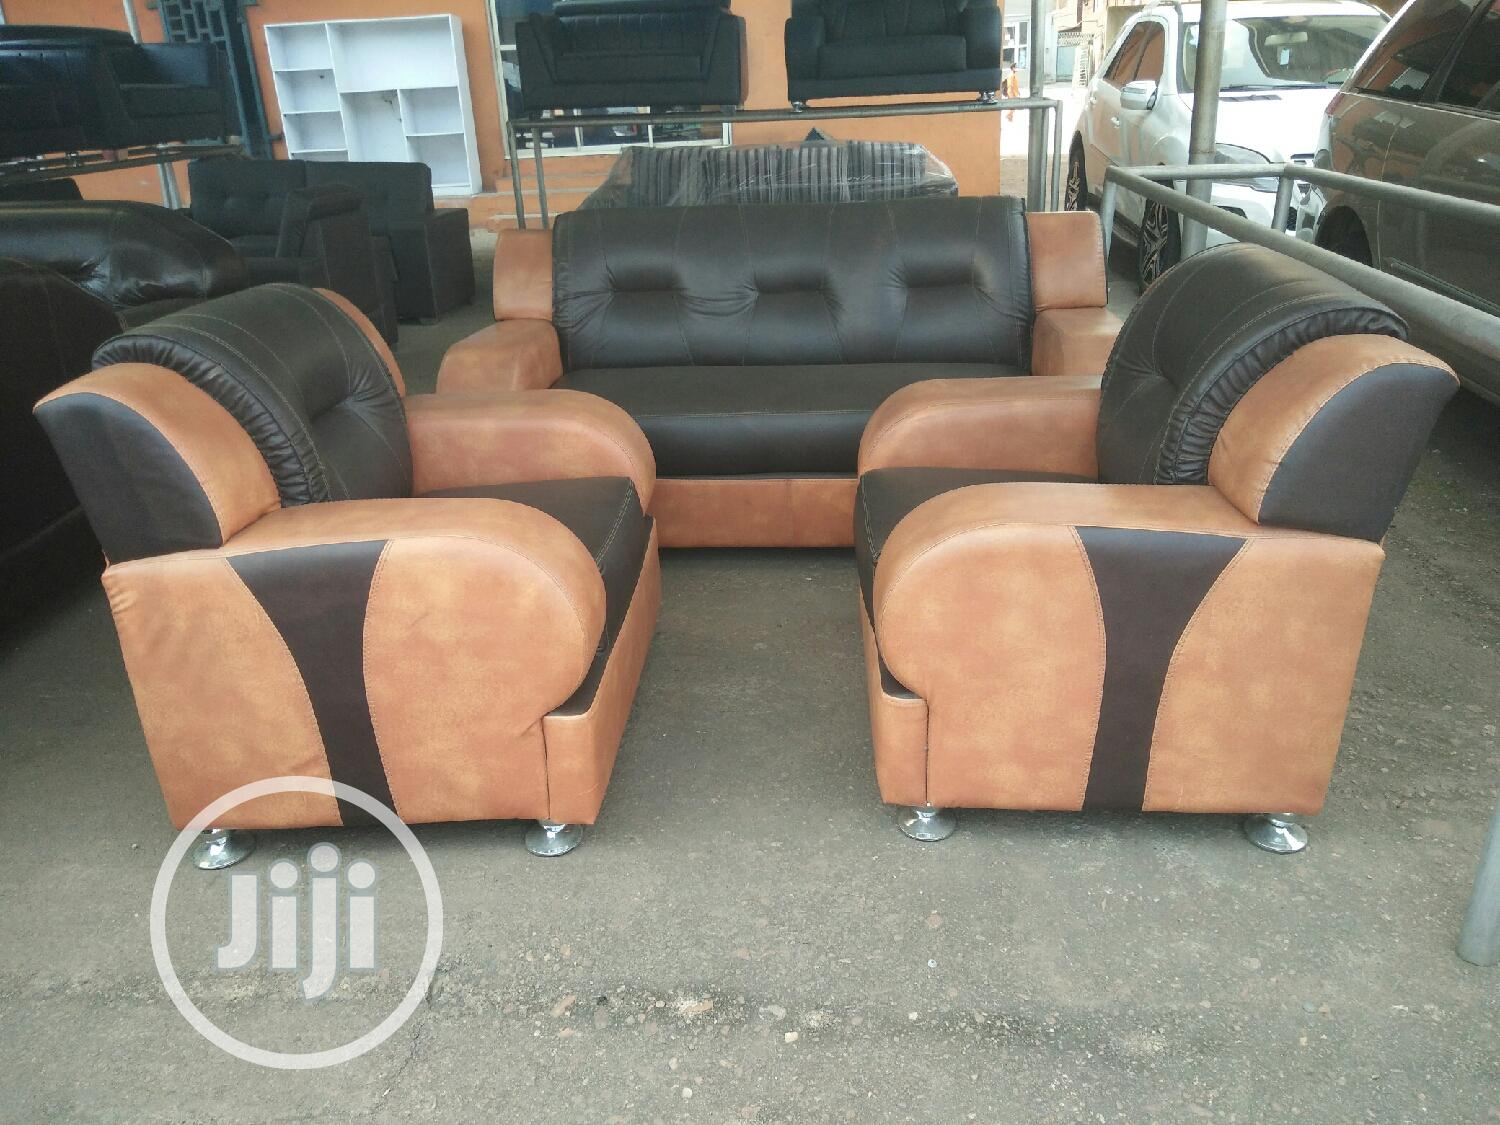 One Set of Chair High Quality for Ur Home Use   Furniture for sale in Lekki, Lagos State, Nigeria